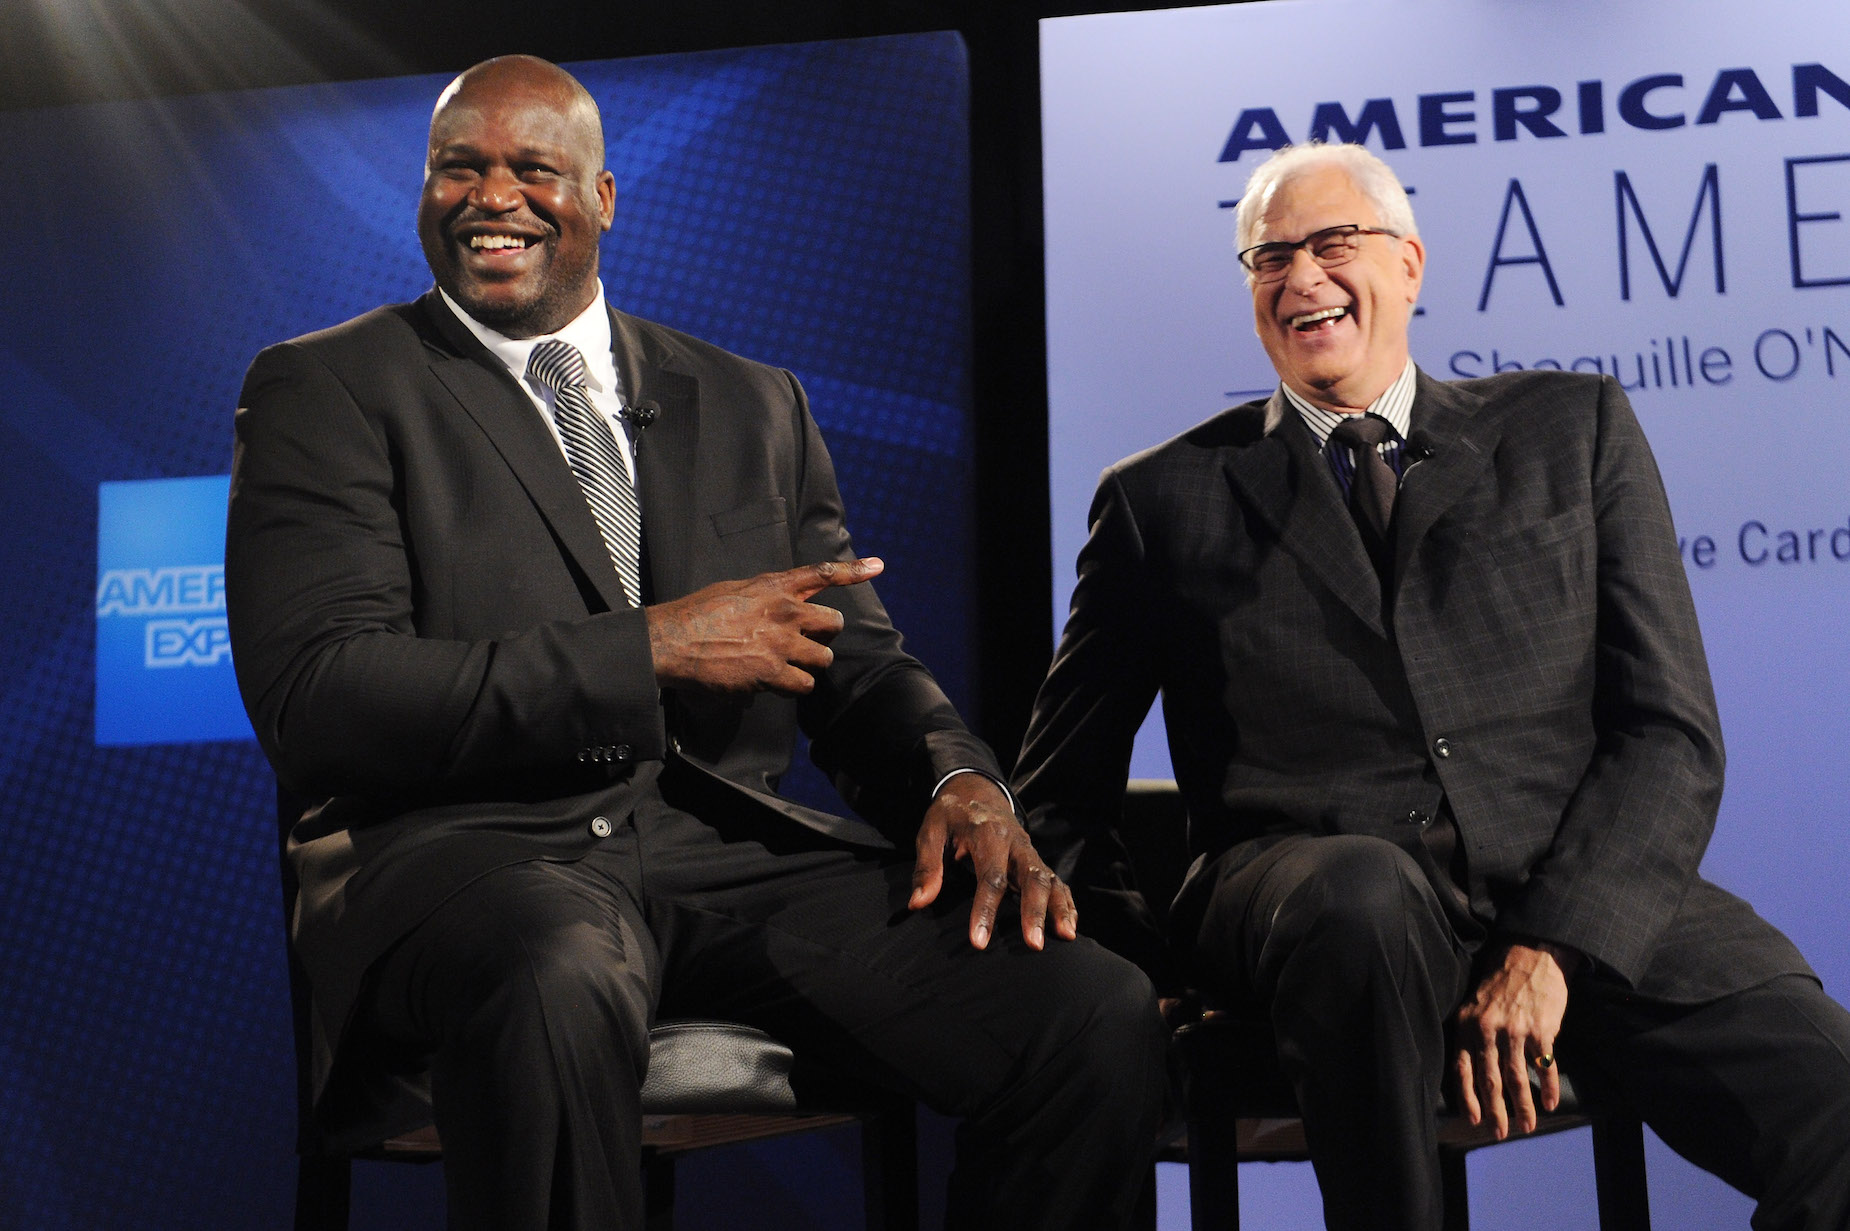 Shaquille O'Neal has become a business success, at least in part, thanks to Phil Jackson's guidance.